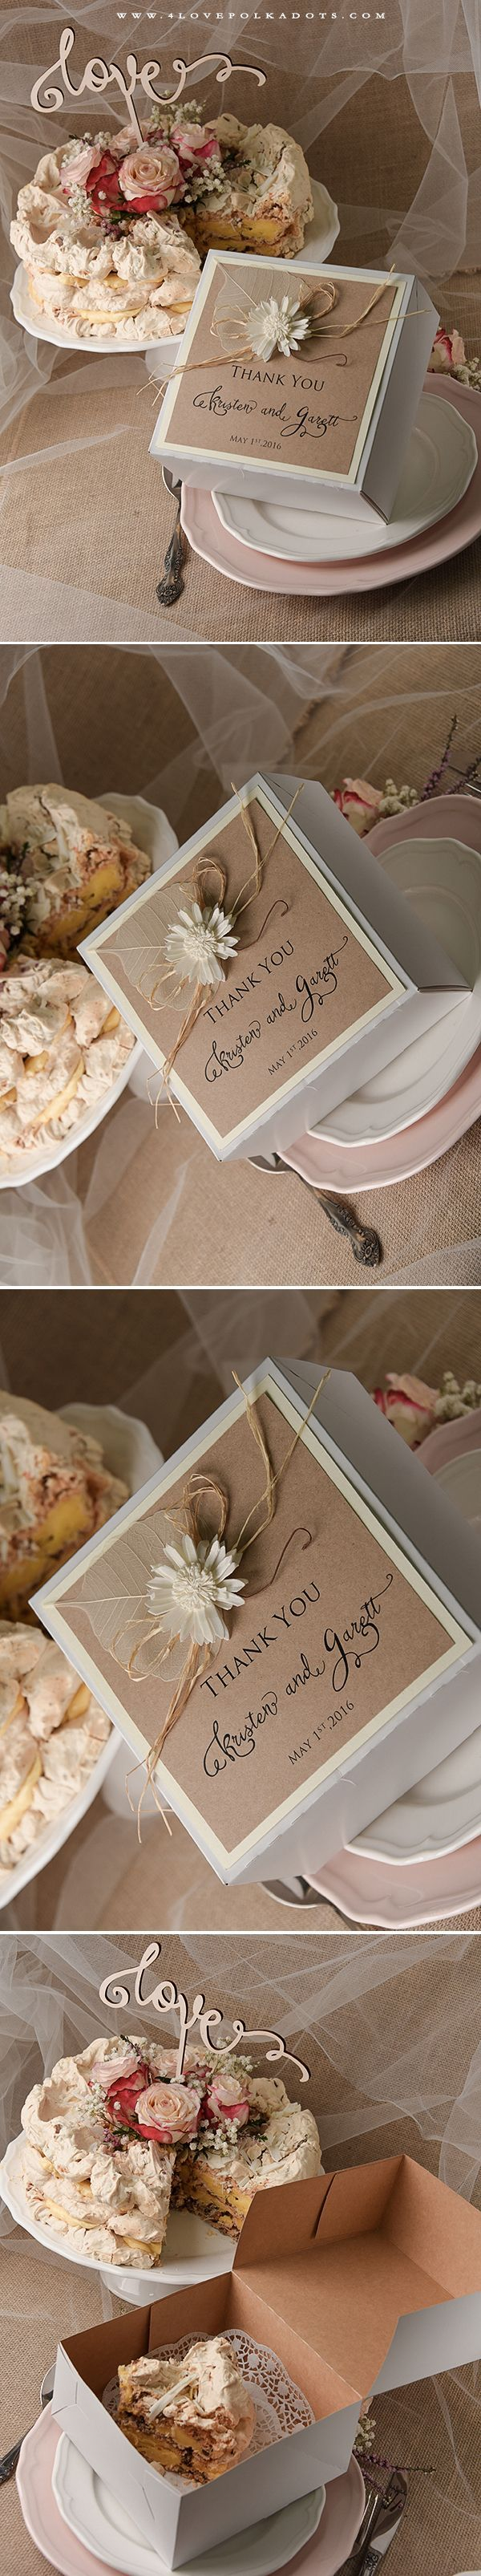 Best 25 Wedding Cake Guest Boxes Ideas On Pinterest Cake Boxes